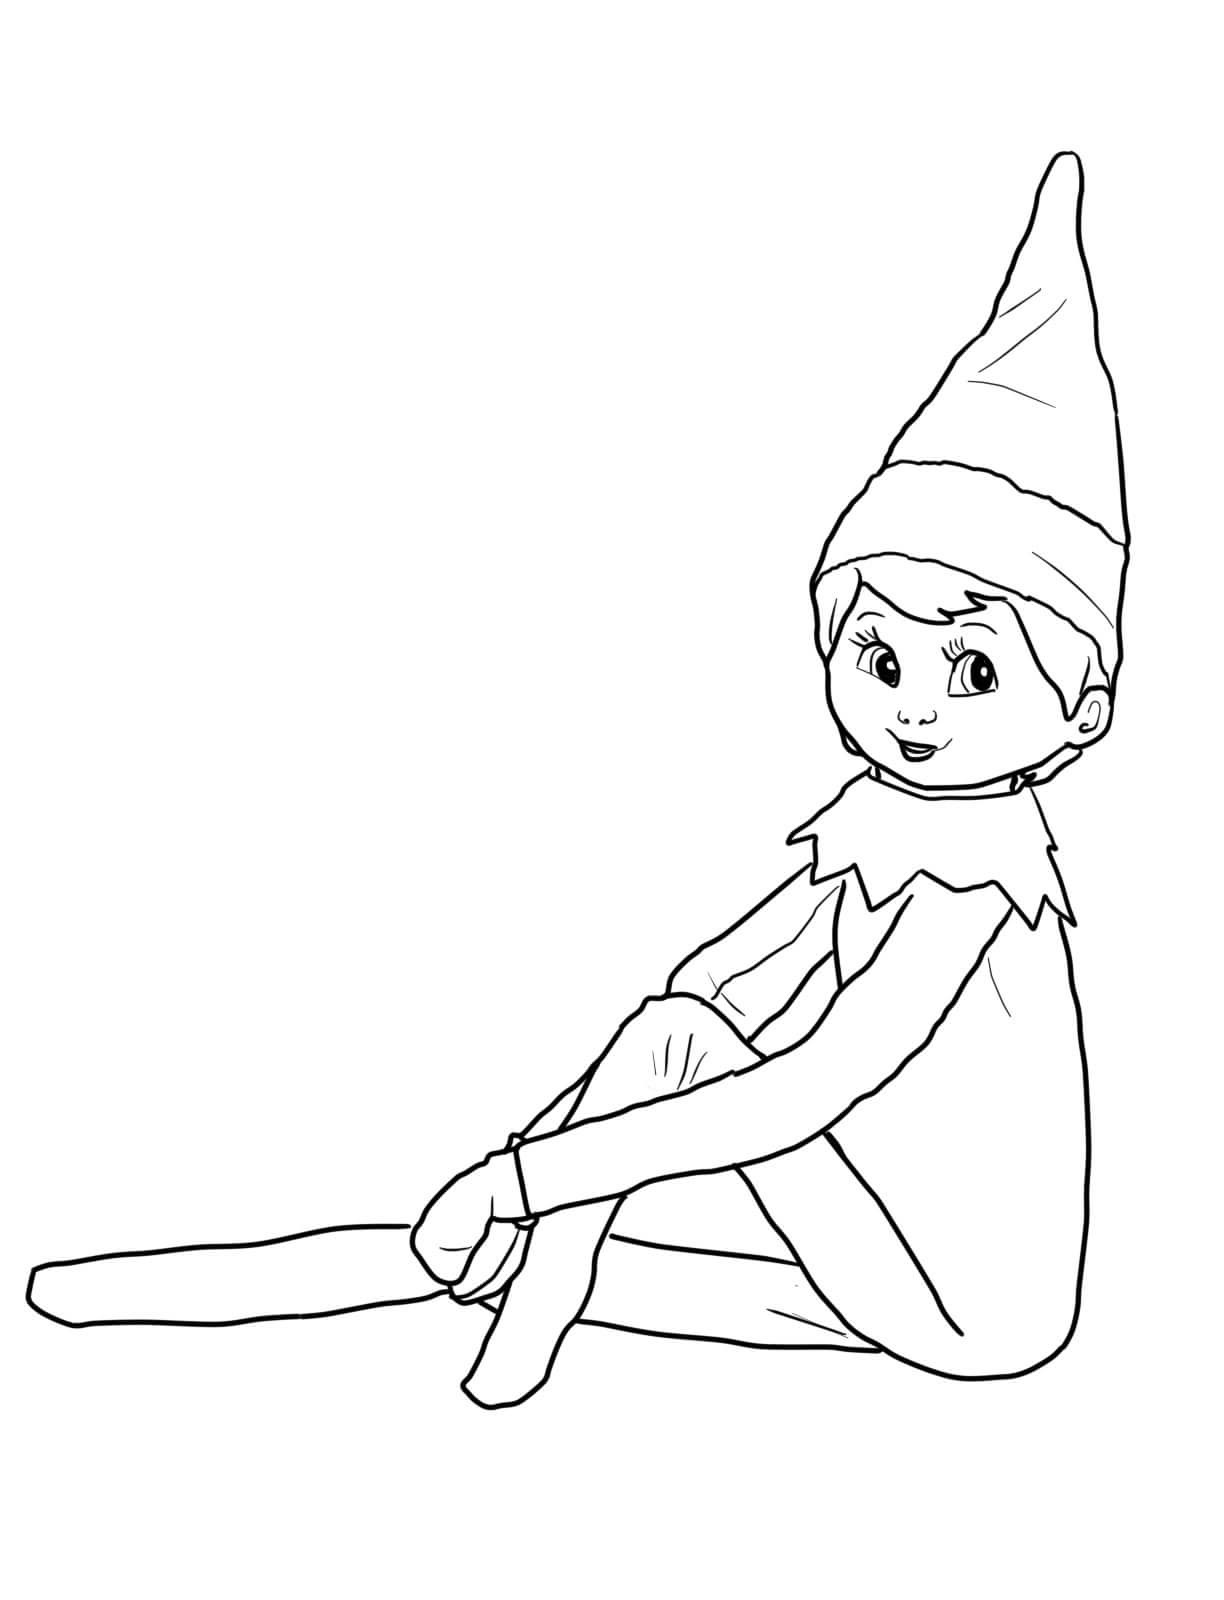 elf on the shelf coloring sheets enjoy